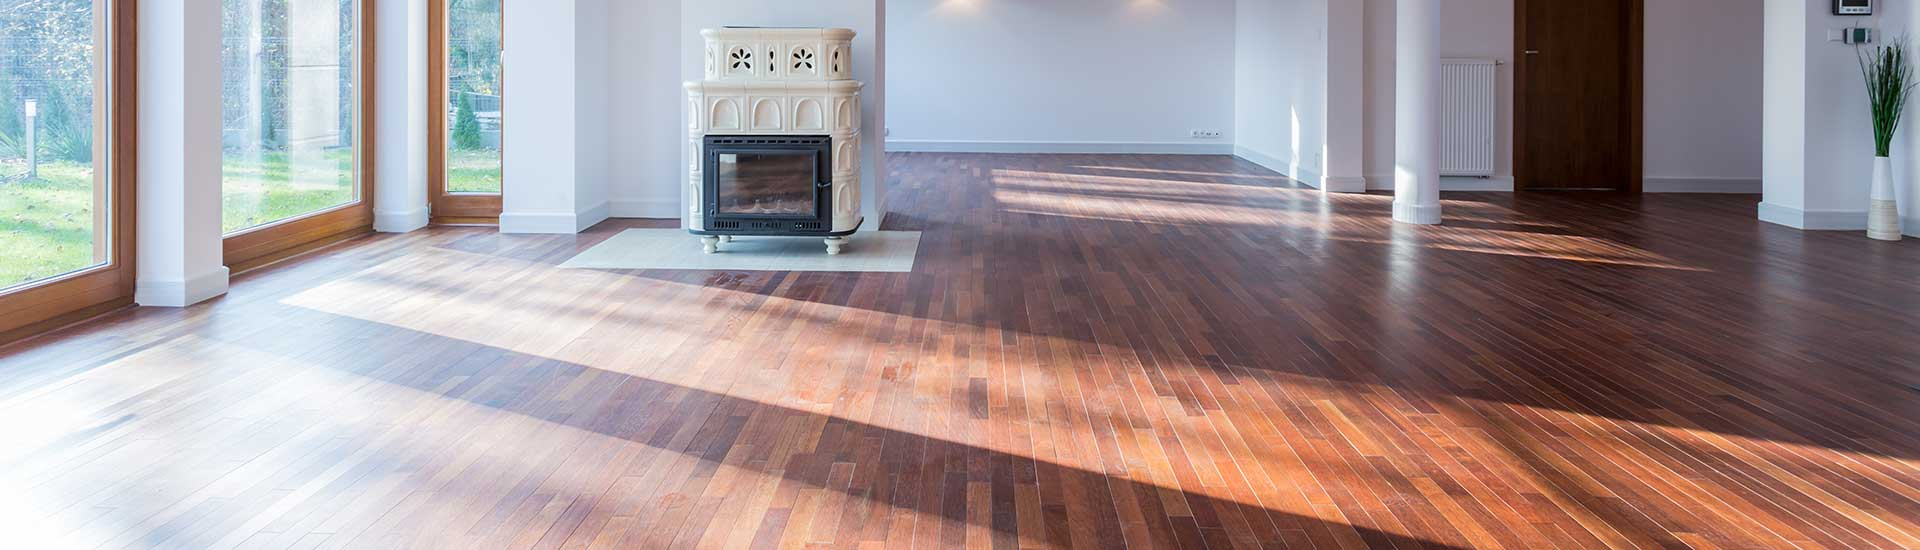 wood floors in sunlight